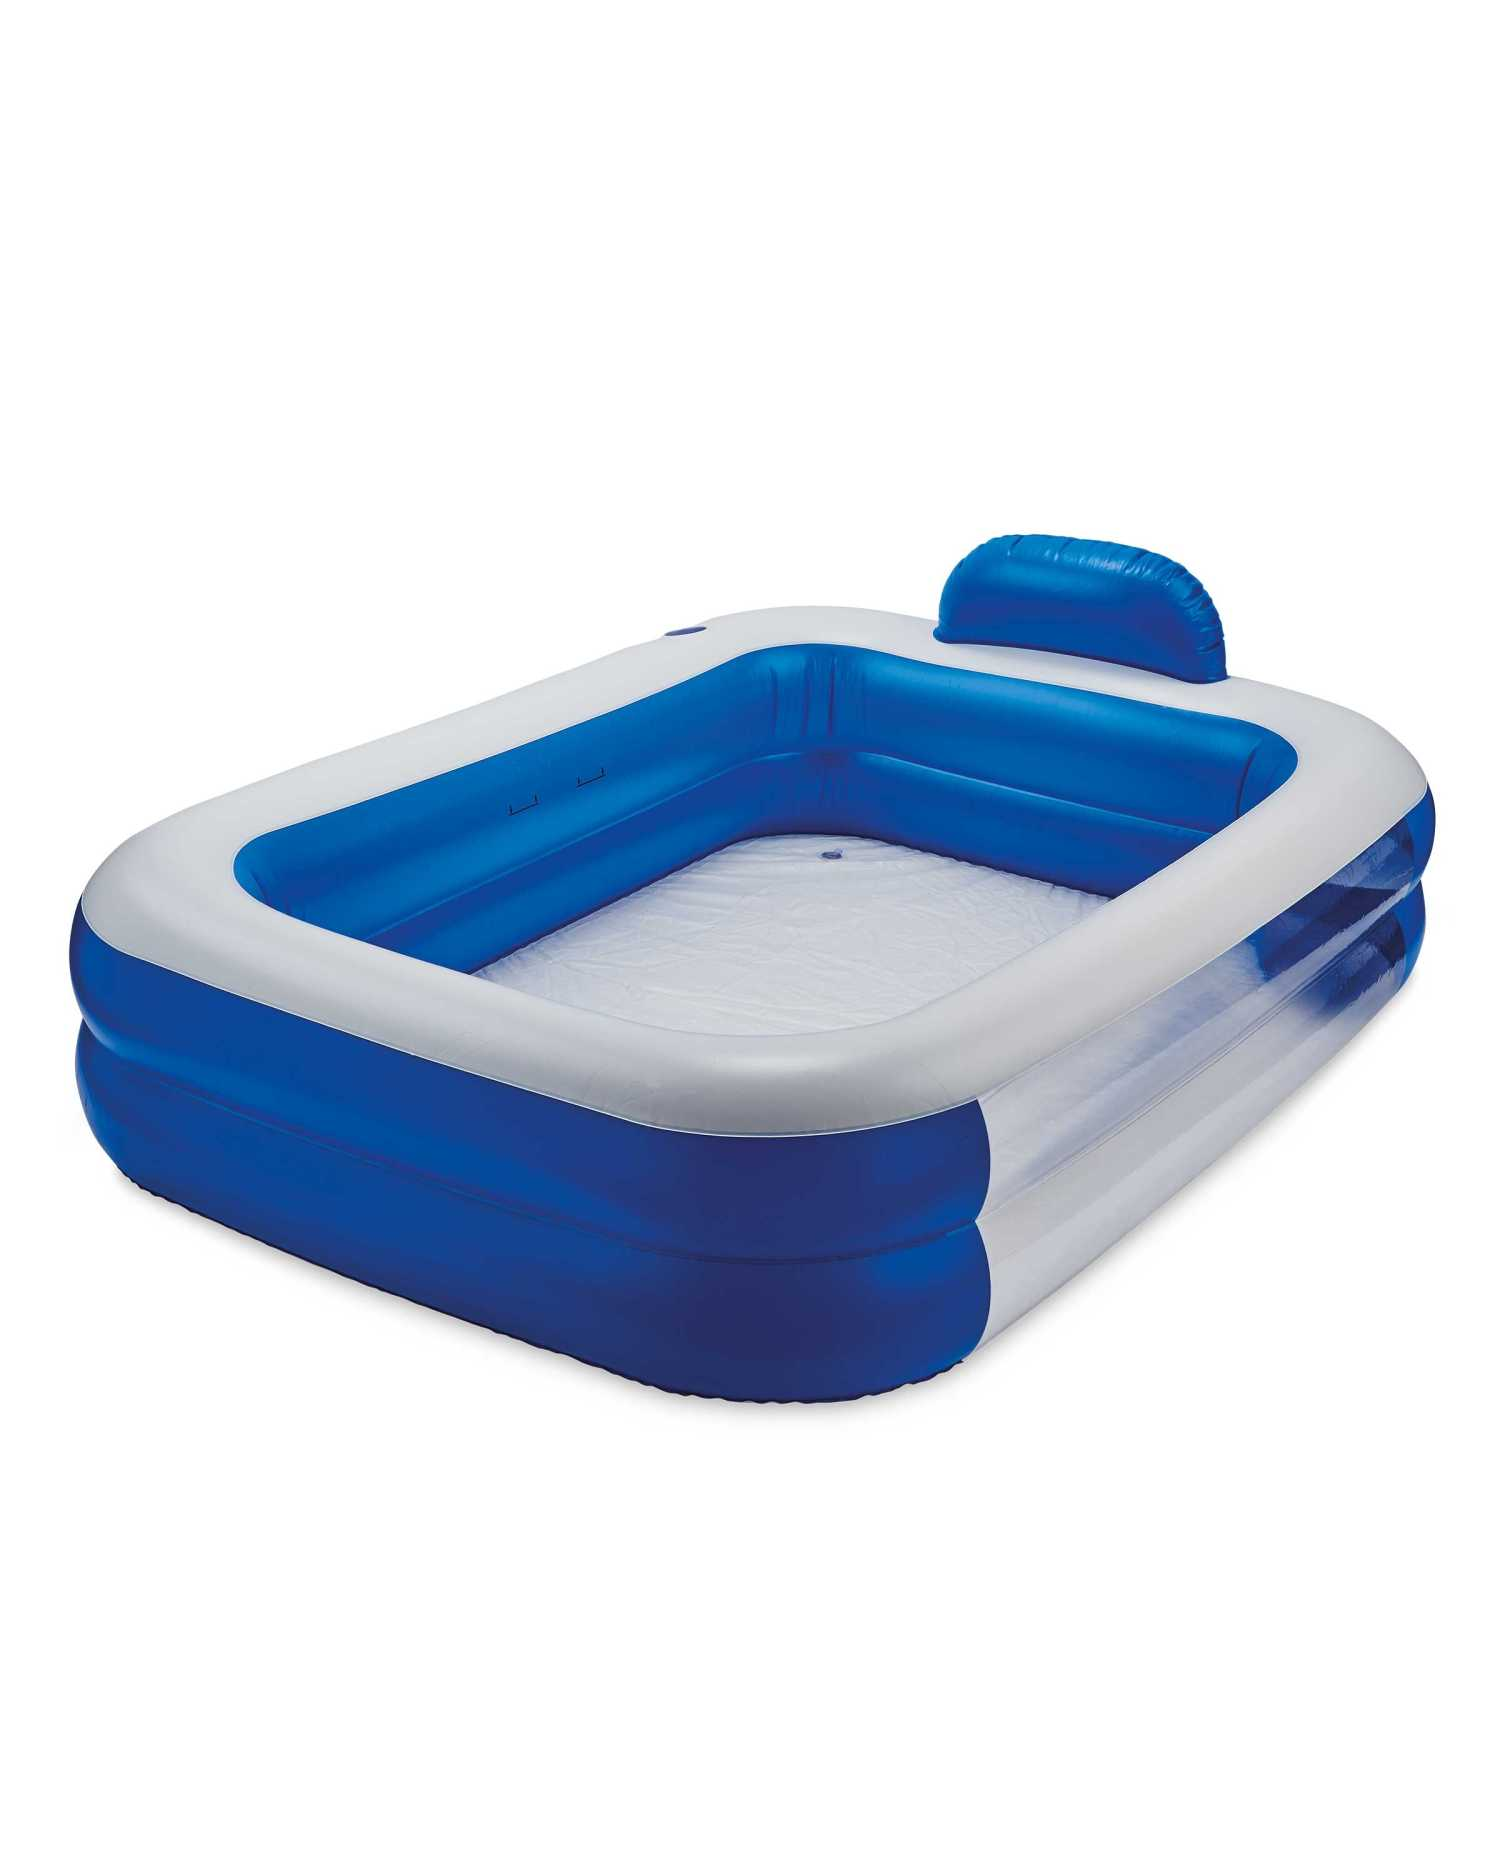 aldi are selling big inflatable paddling pools for. Black Bedroom Furniture Sets. Home Design Ideas